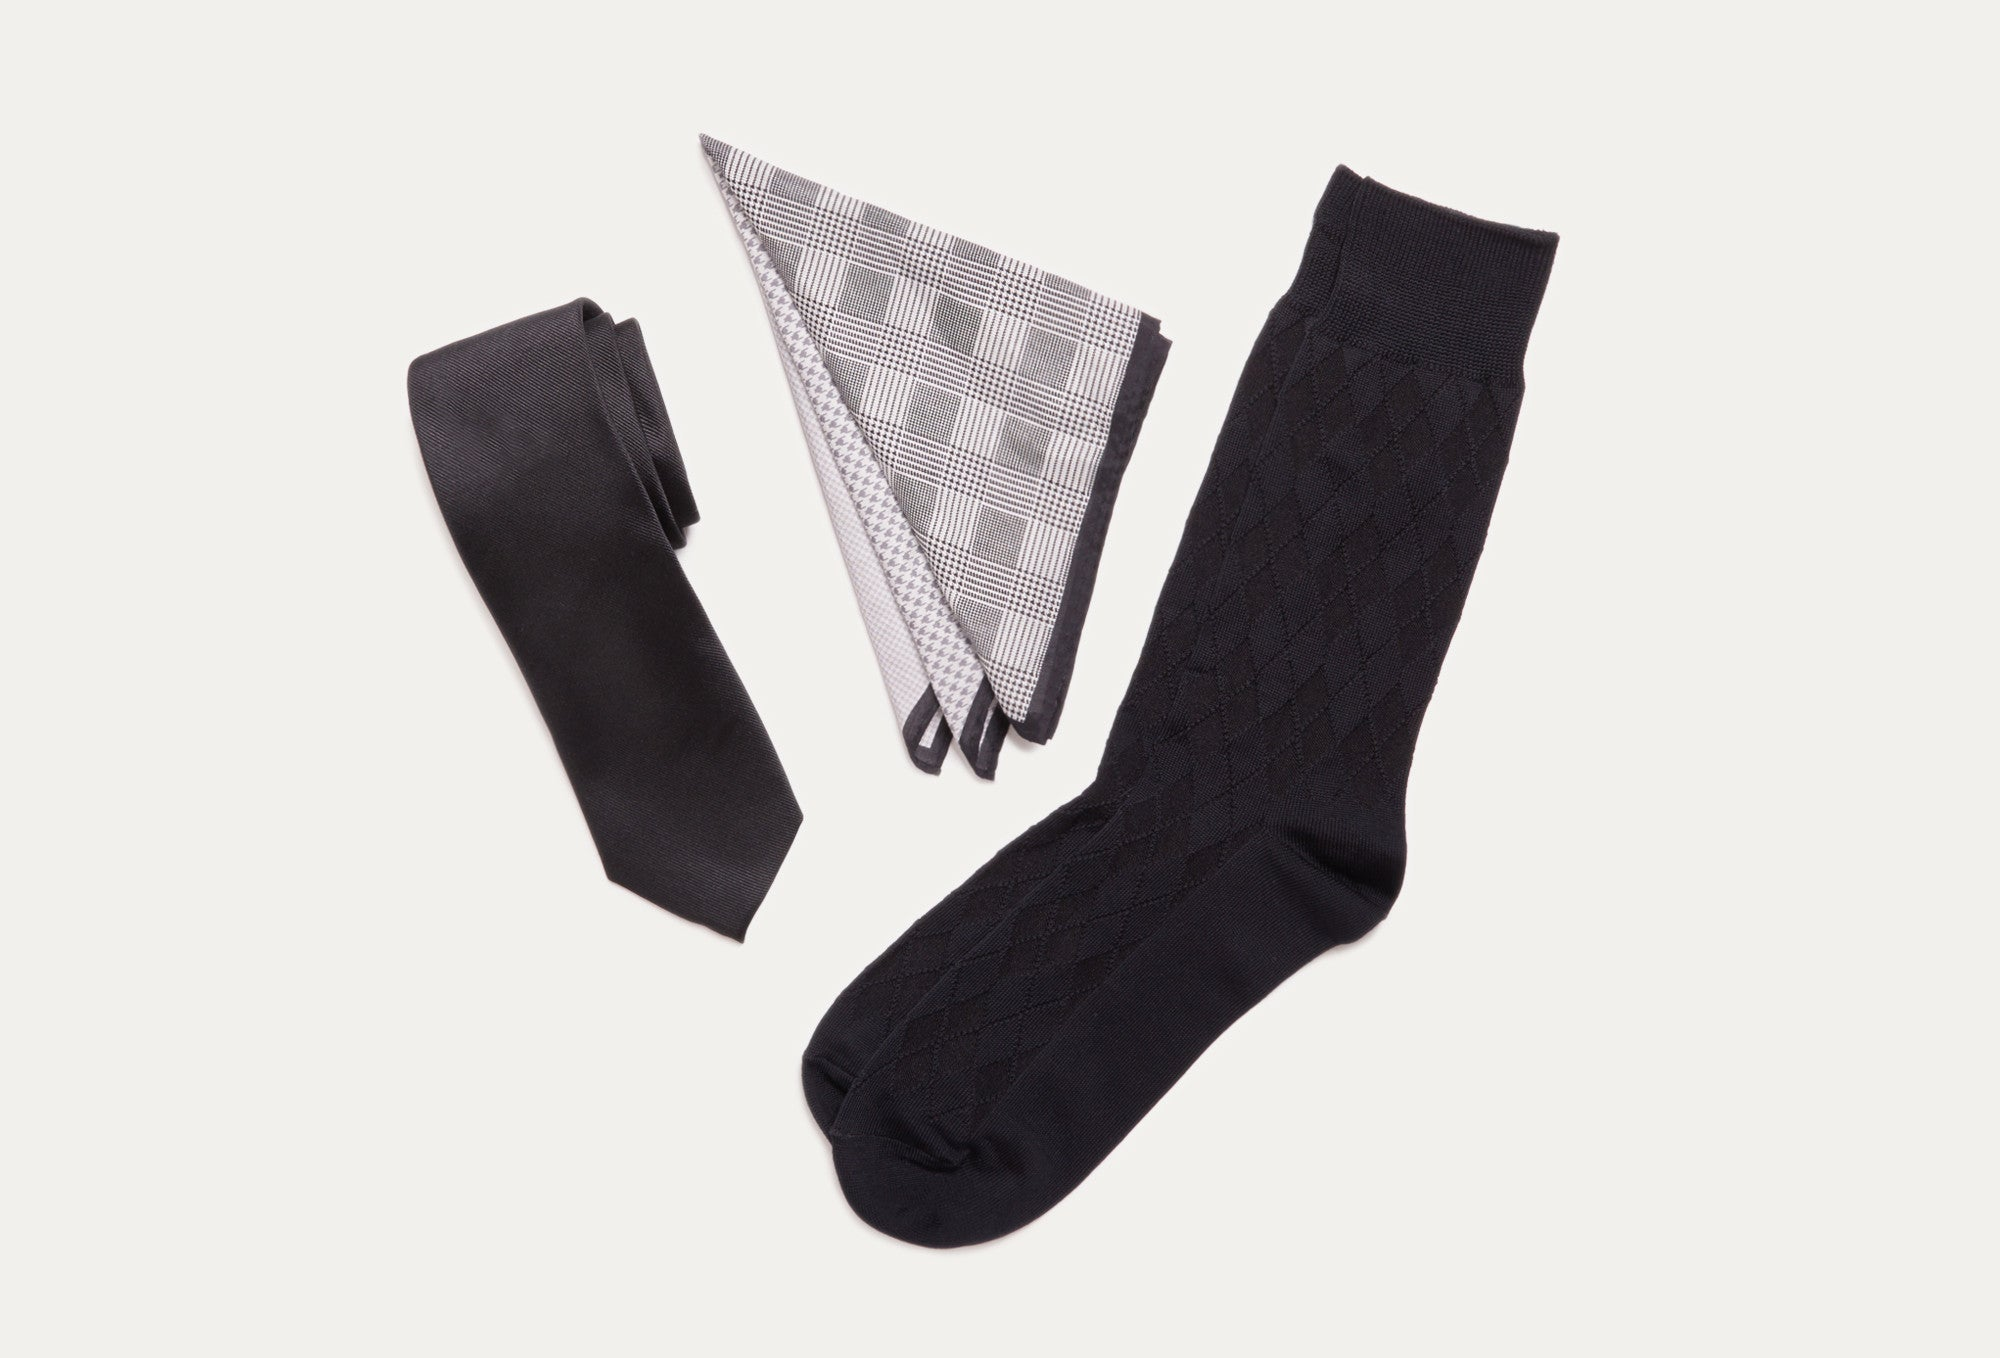 Fox Tie & Sock Bundle